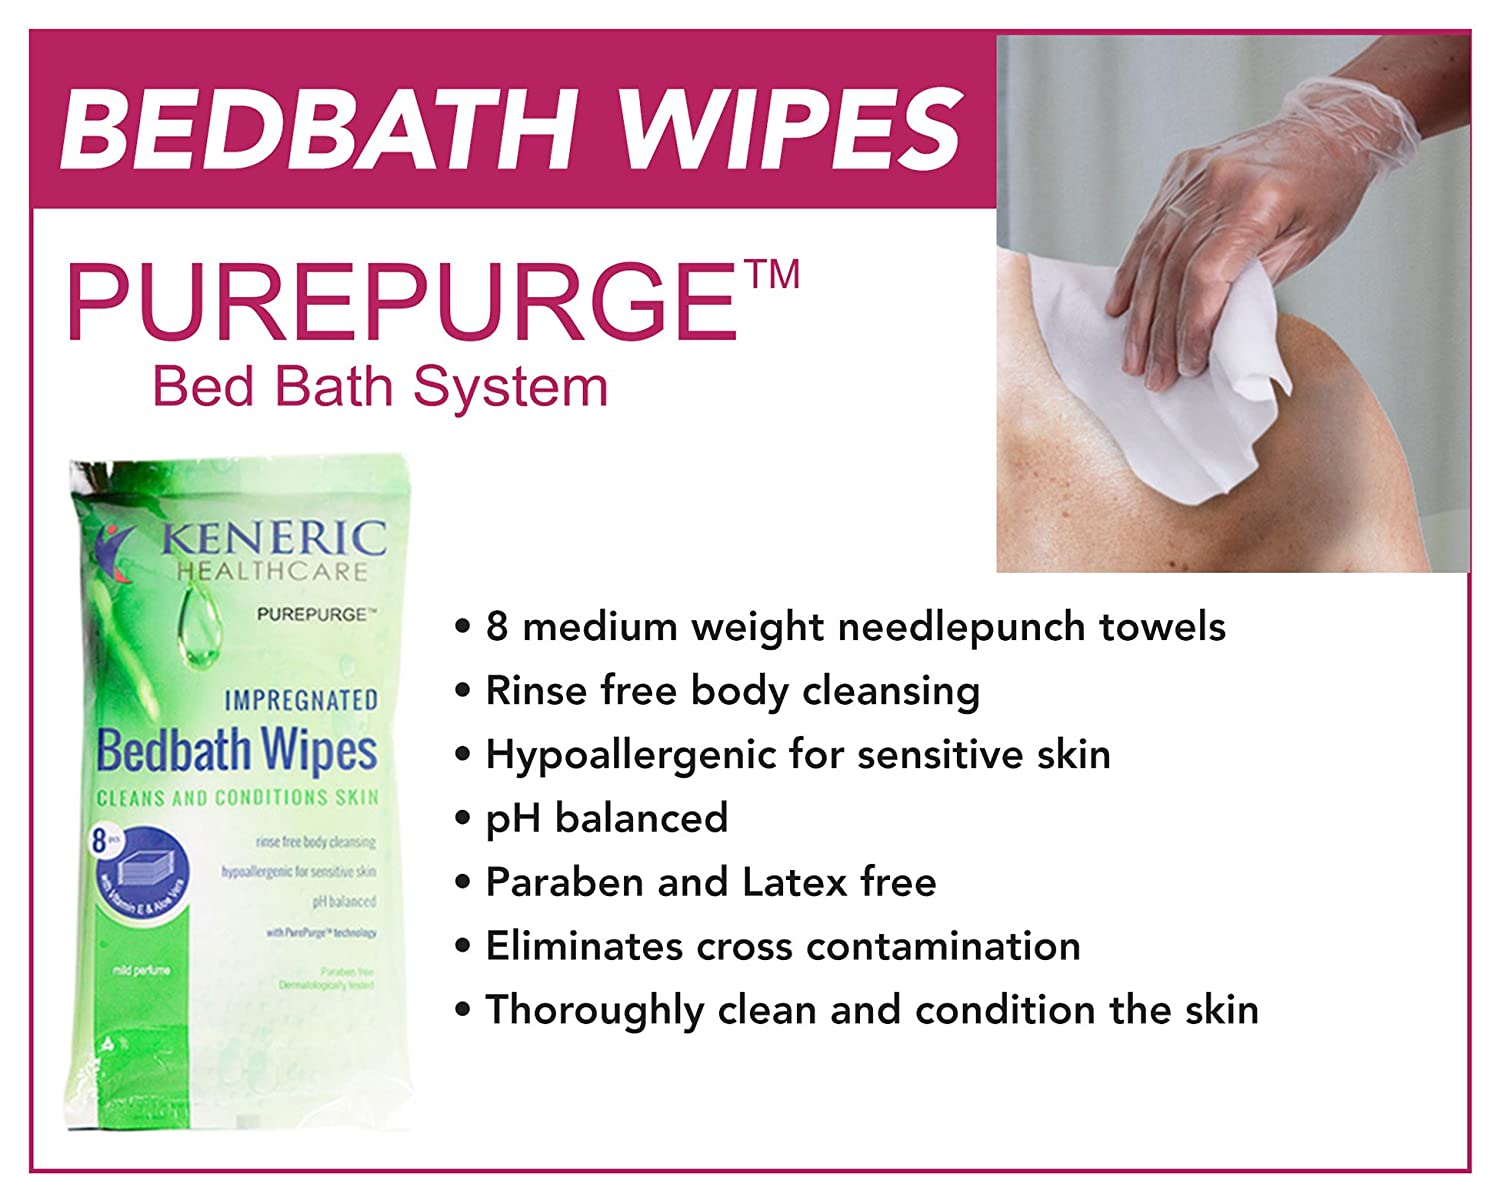 Amazon.com: PurePurge Bed Bath Wipes - Case of 30 Packs, 8 Wipes/Pack (240 Total Wipes): Health & Personal Care